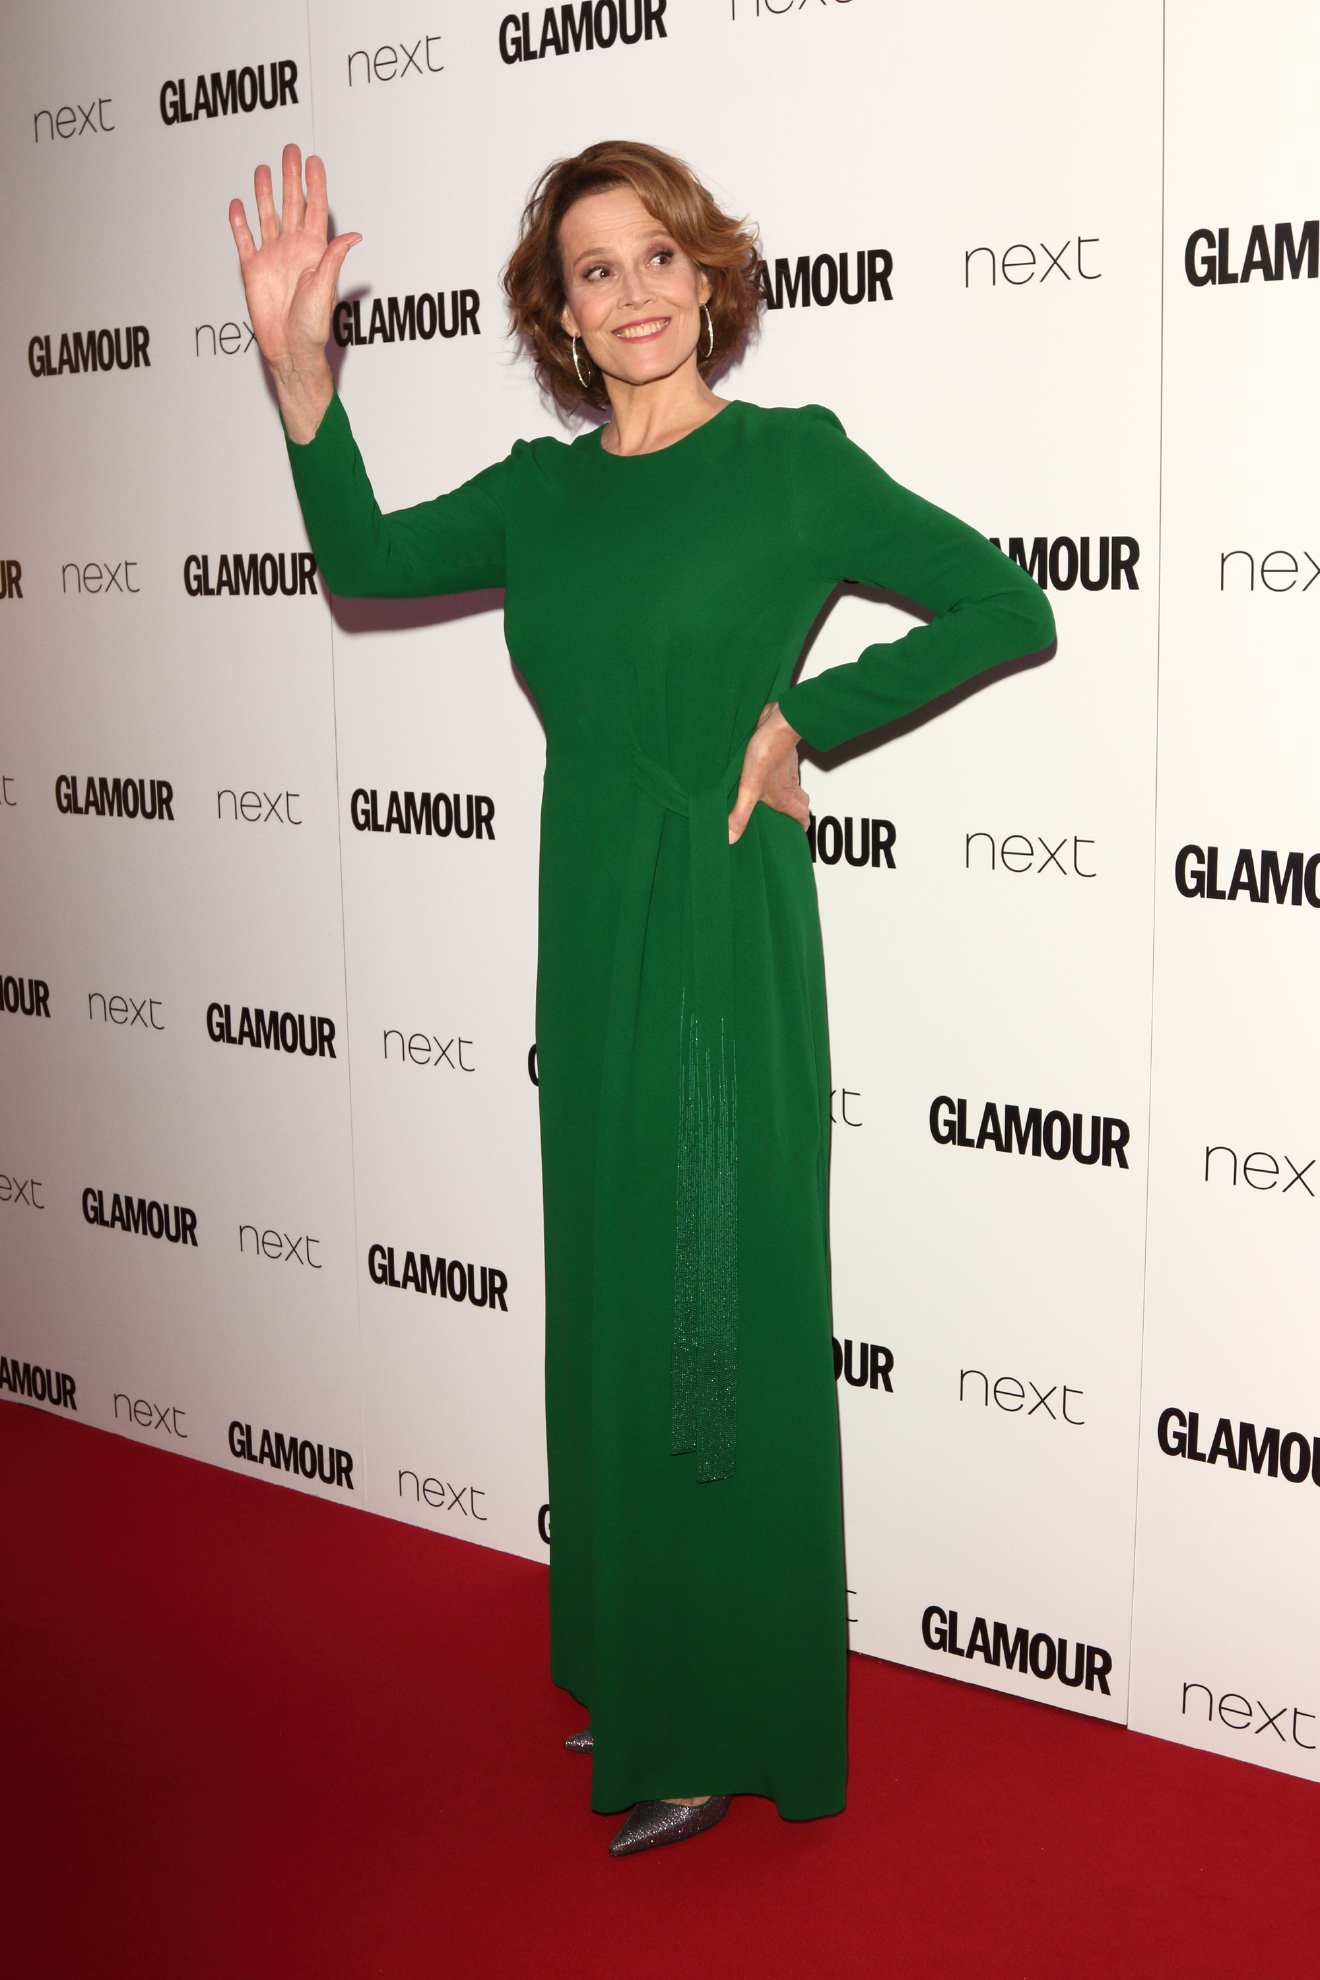 Glamour Women Of The Year Awards at Berkeley Square Gardens, London                                                                      Featuring: Sigourney Weaver                                   Where: London, United Kingdom                                   When: 07 Jun 2016                                   Credit: WENN.com